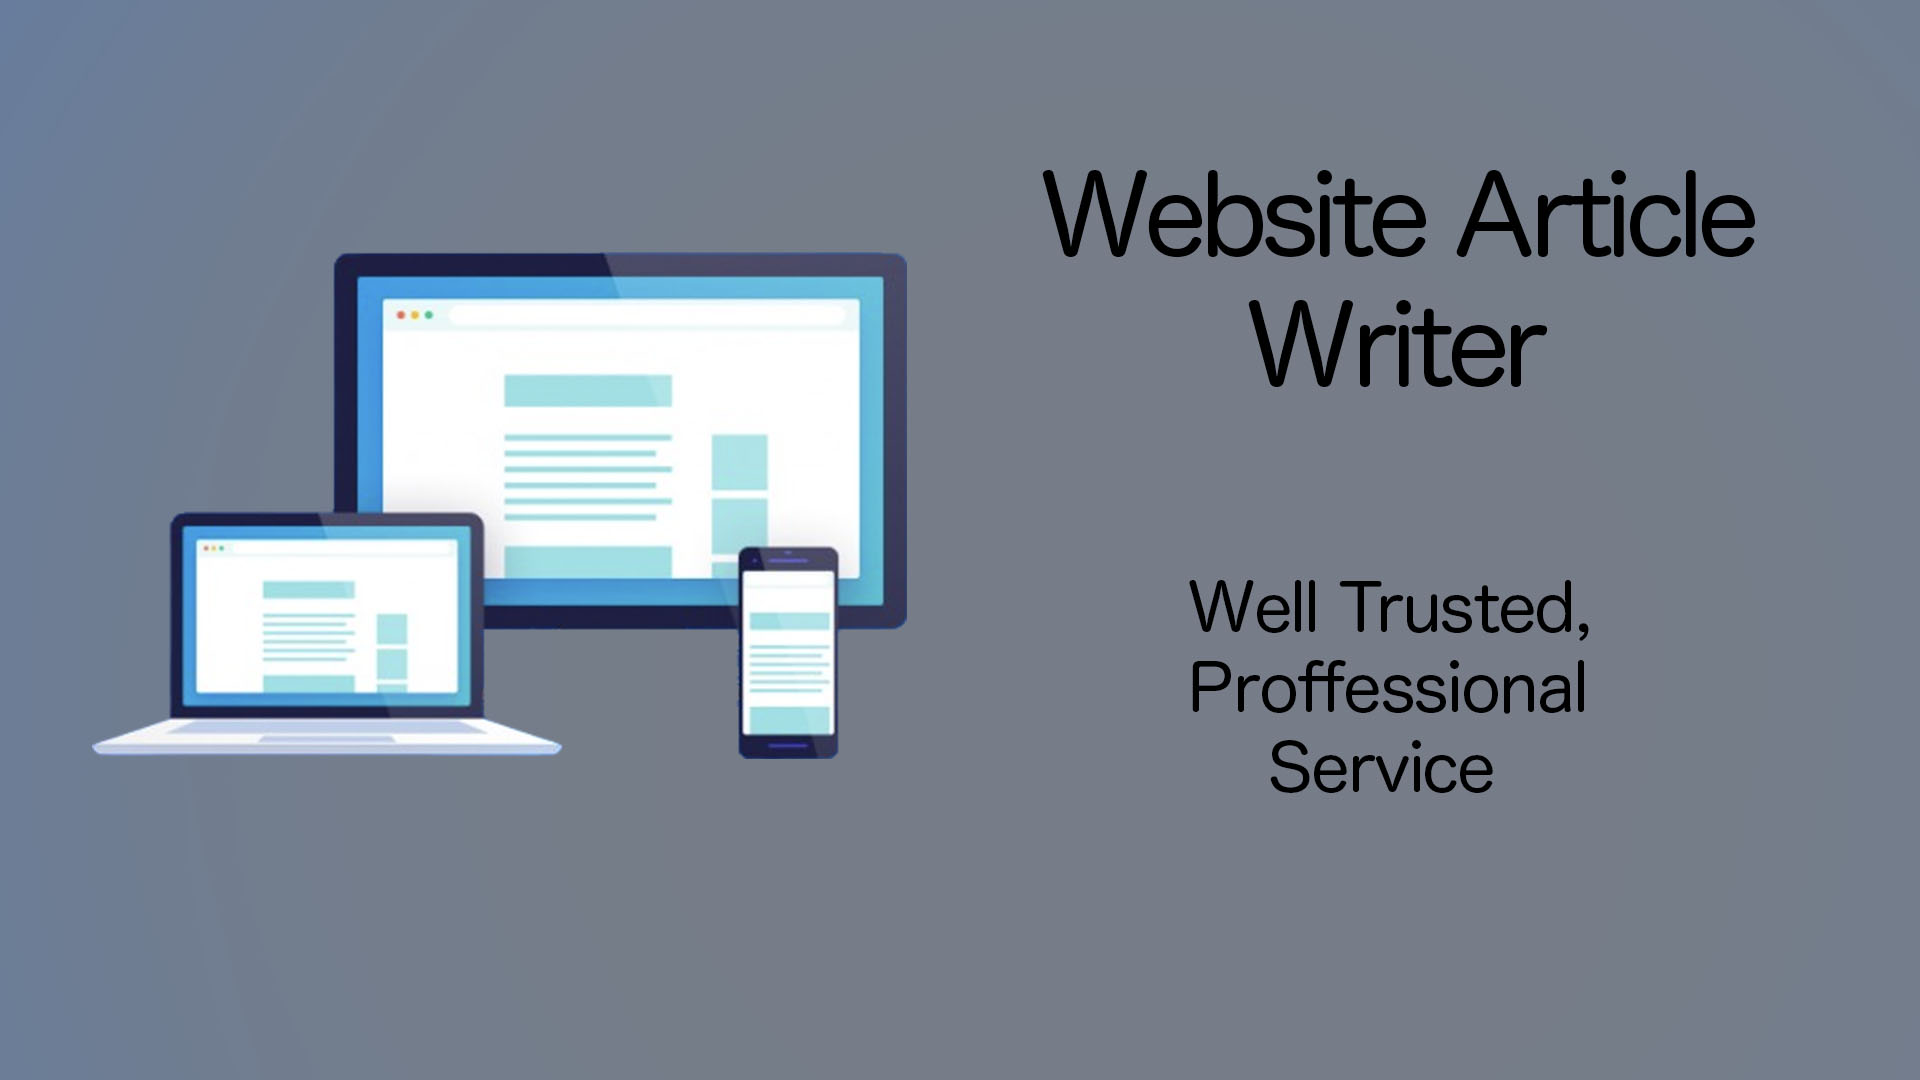 Website Article Writer - High Quality Articles